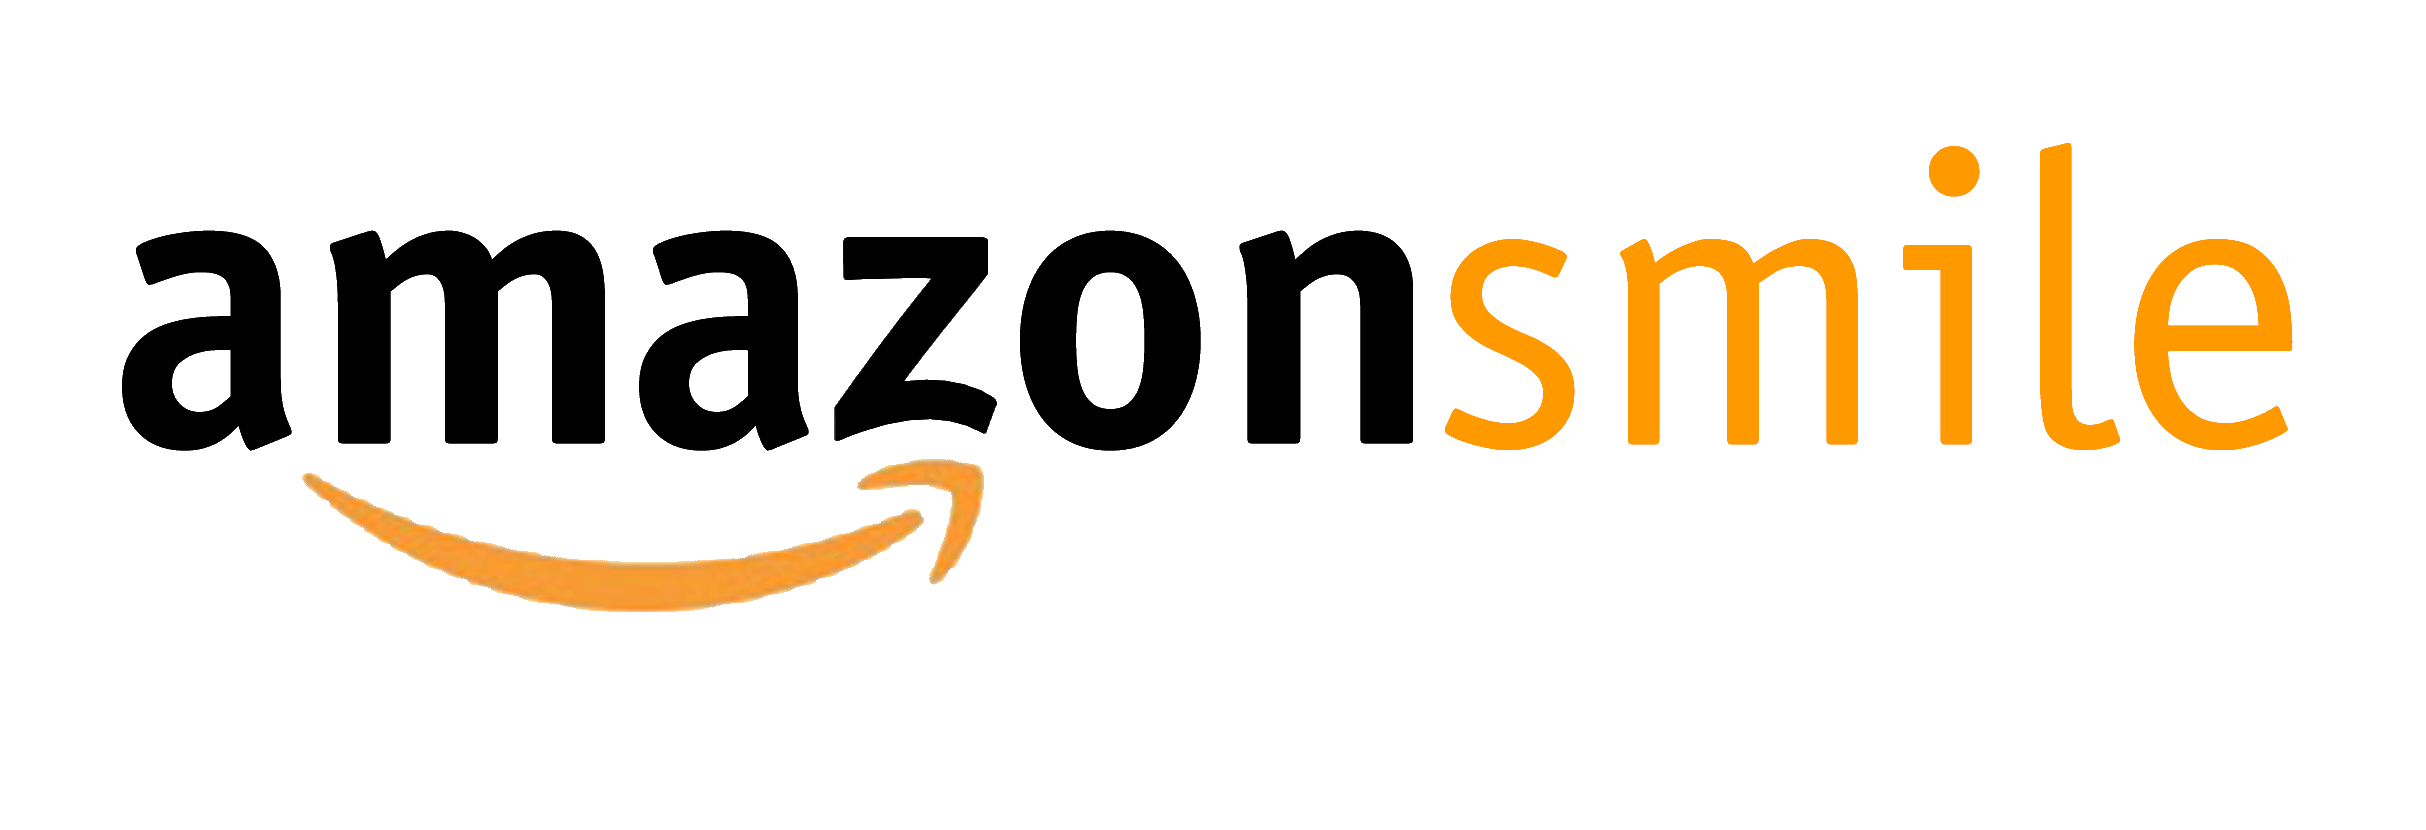 By clicking Amazon Smile, you can support BiG every time you shop through Amazon.